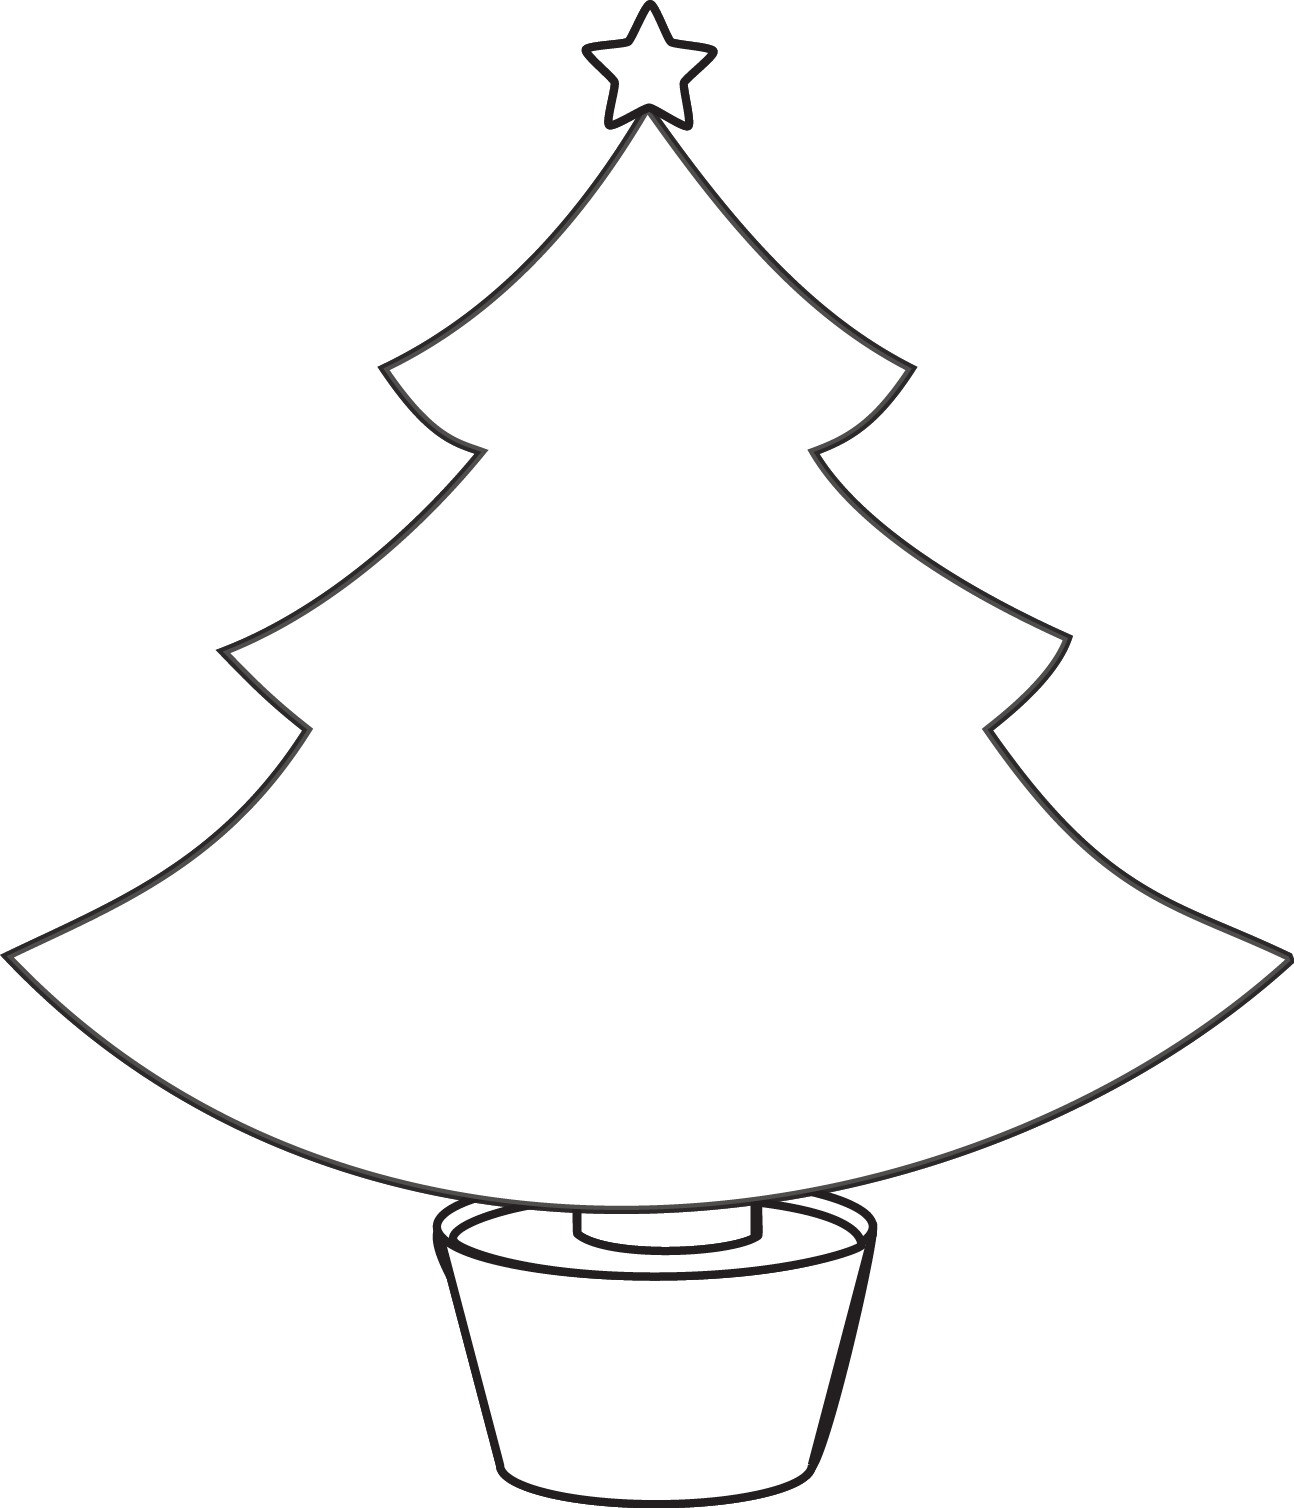 1294x1508 Christmas Tree Patterns For Kids Coloring